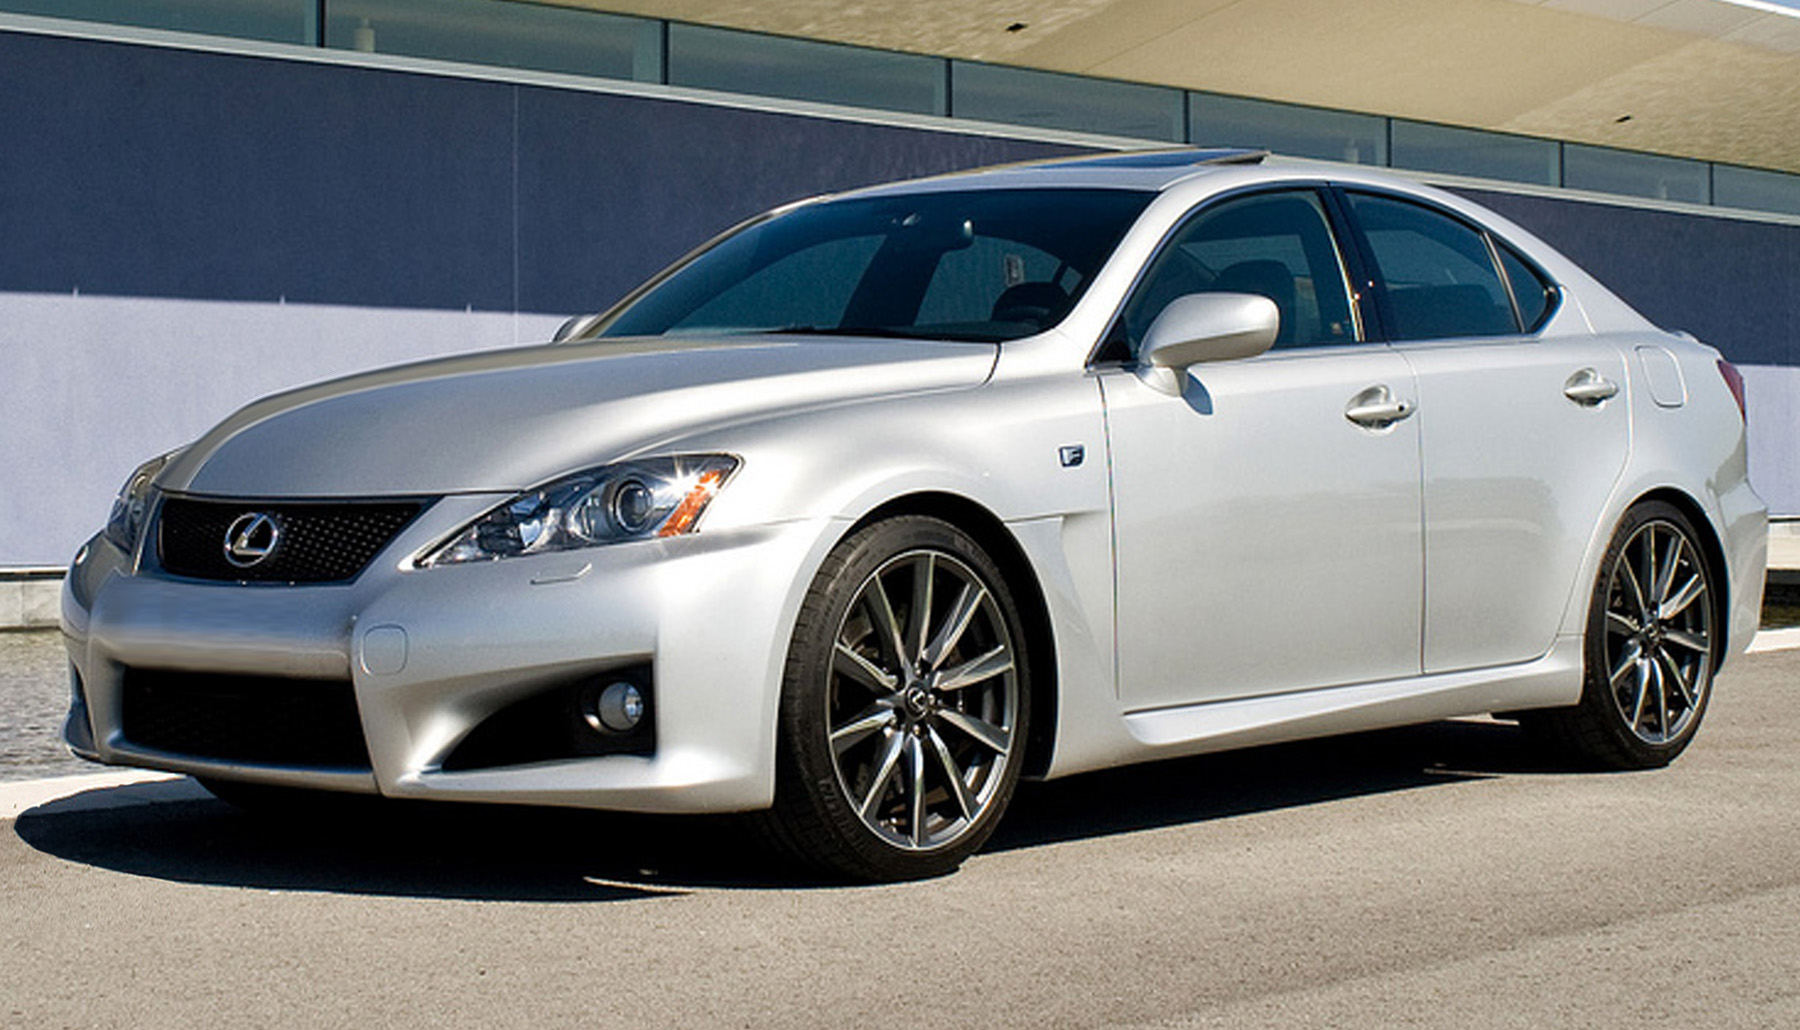 09_Lexus_IS-F_Mercury_Metallic